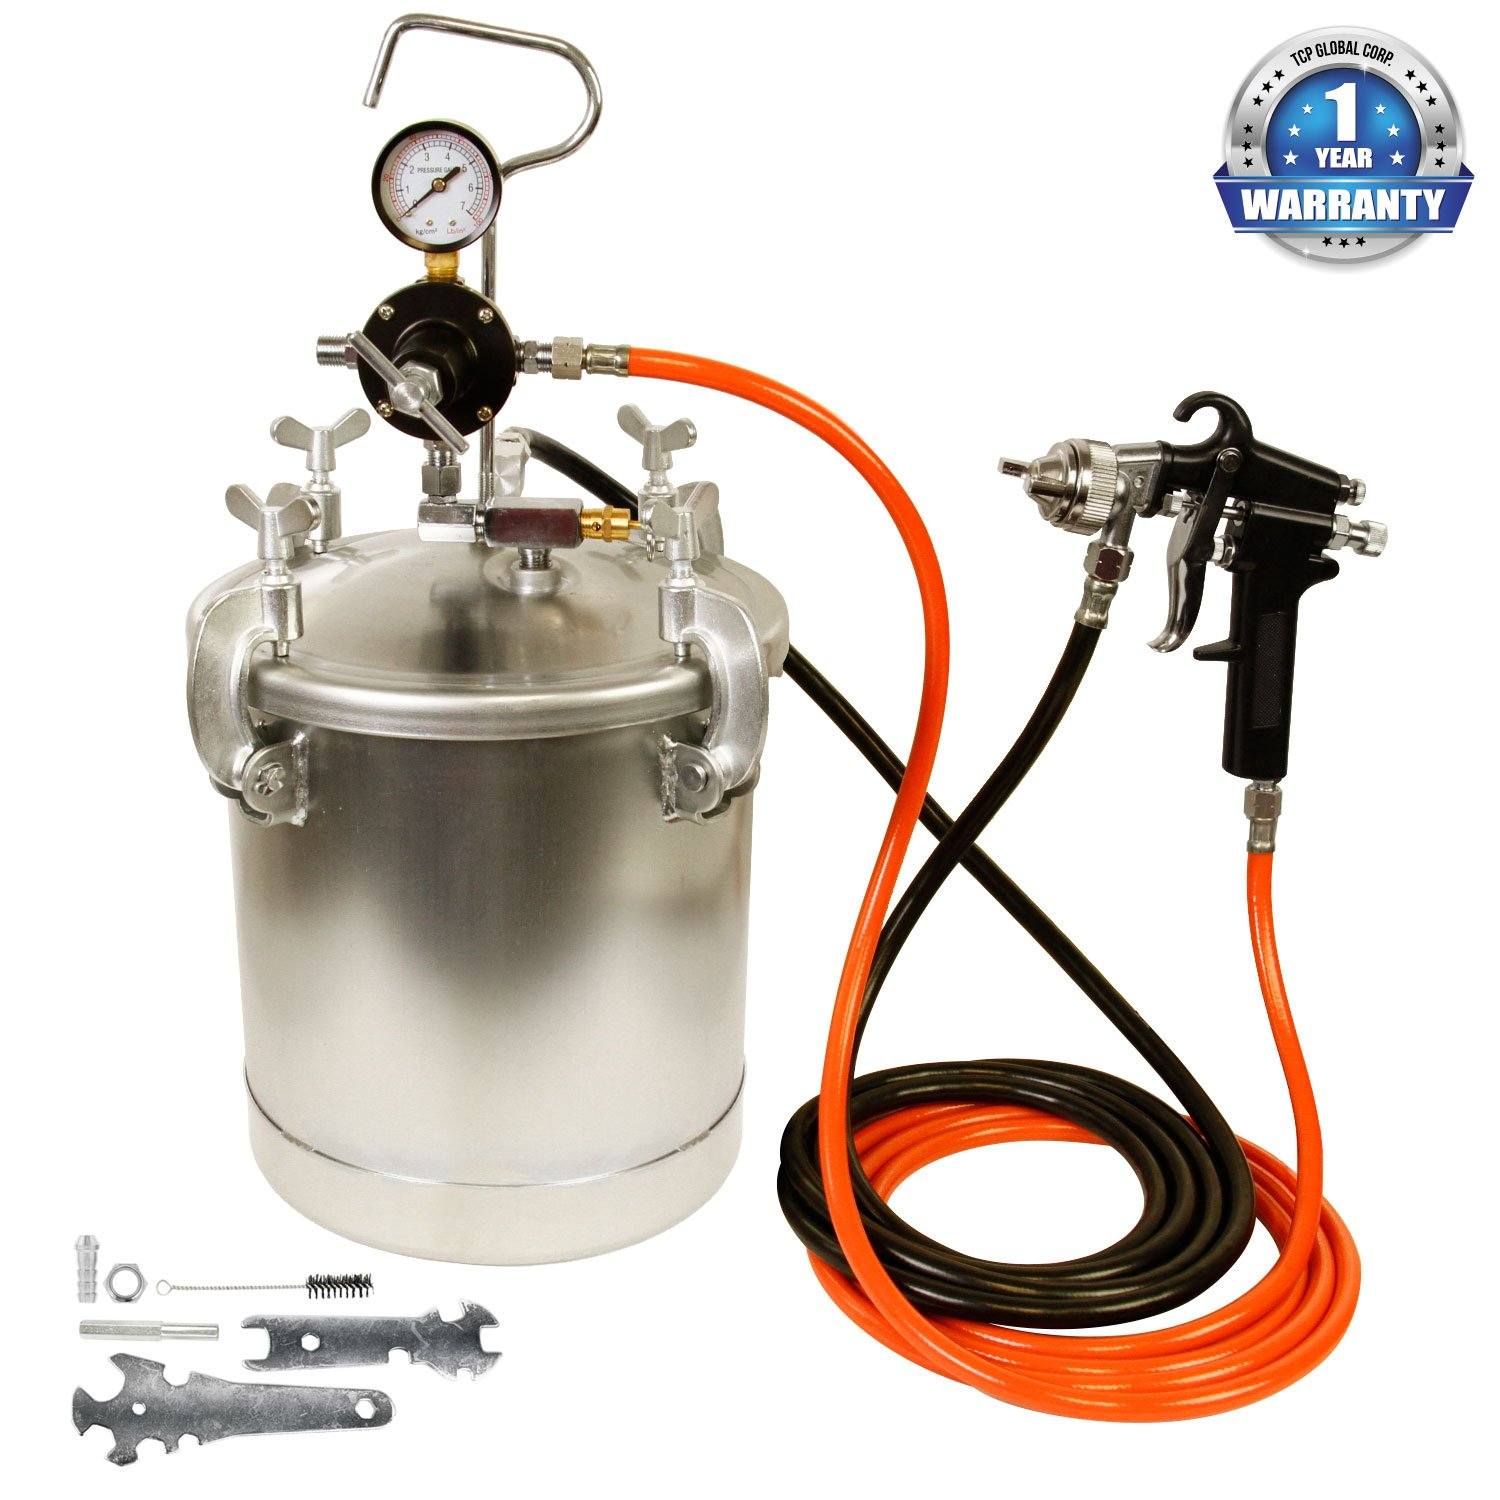 TCP Global Pressure Tank Paint Spray Gun with 1.5 Mm Nozzle 2-1/2 Gal. Pressure Pot & Spray Gun with Hoses